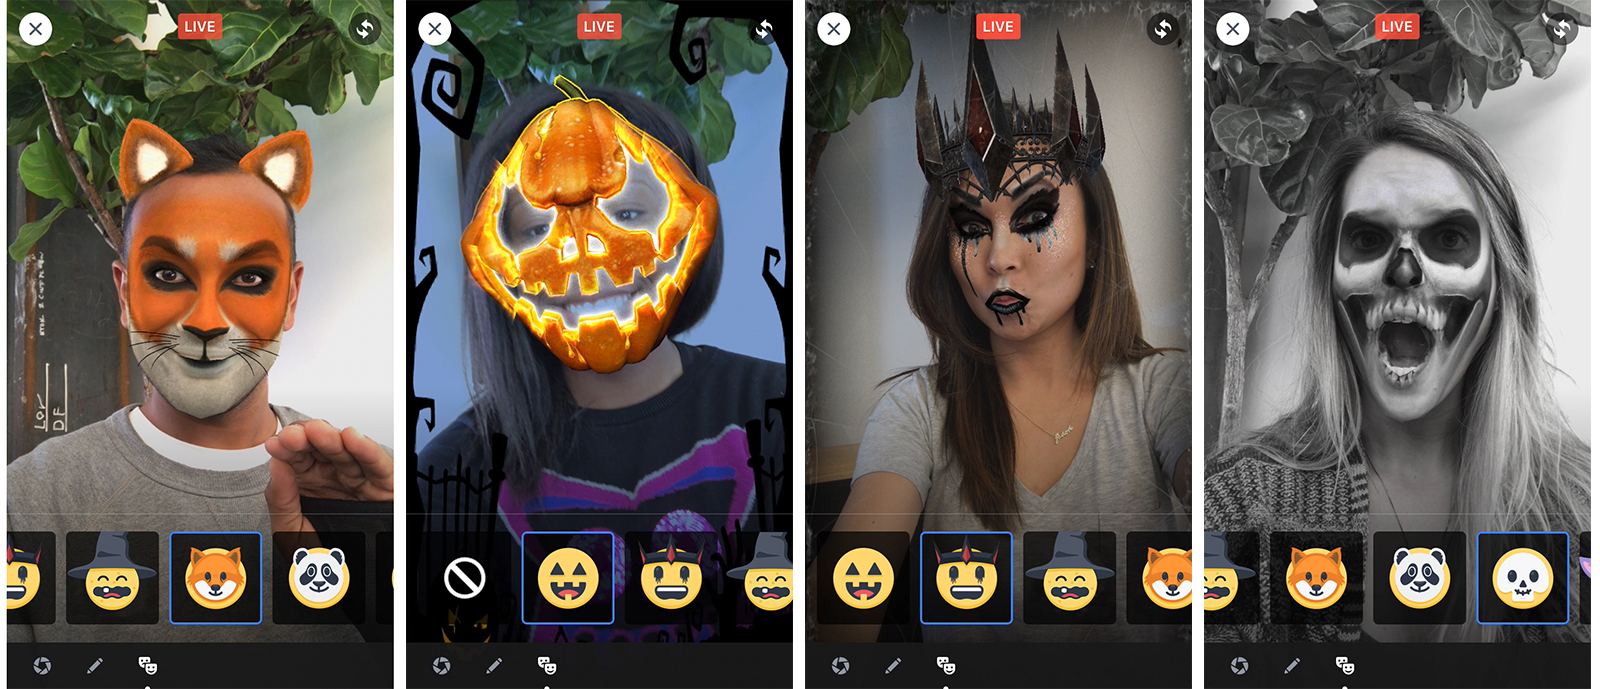 Facebook's acquisition will enhance its Snapchat-like filters